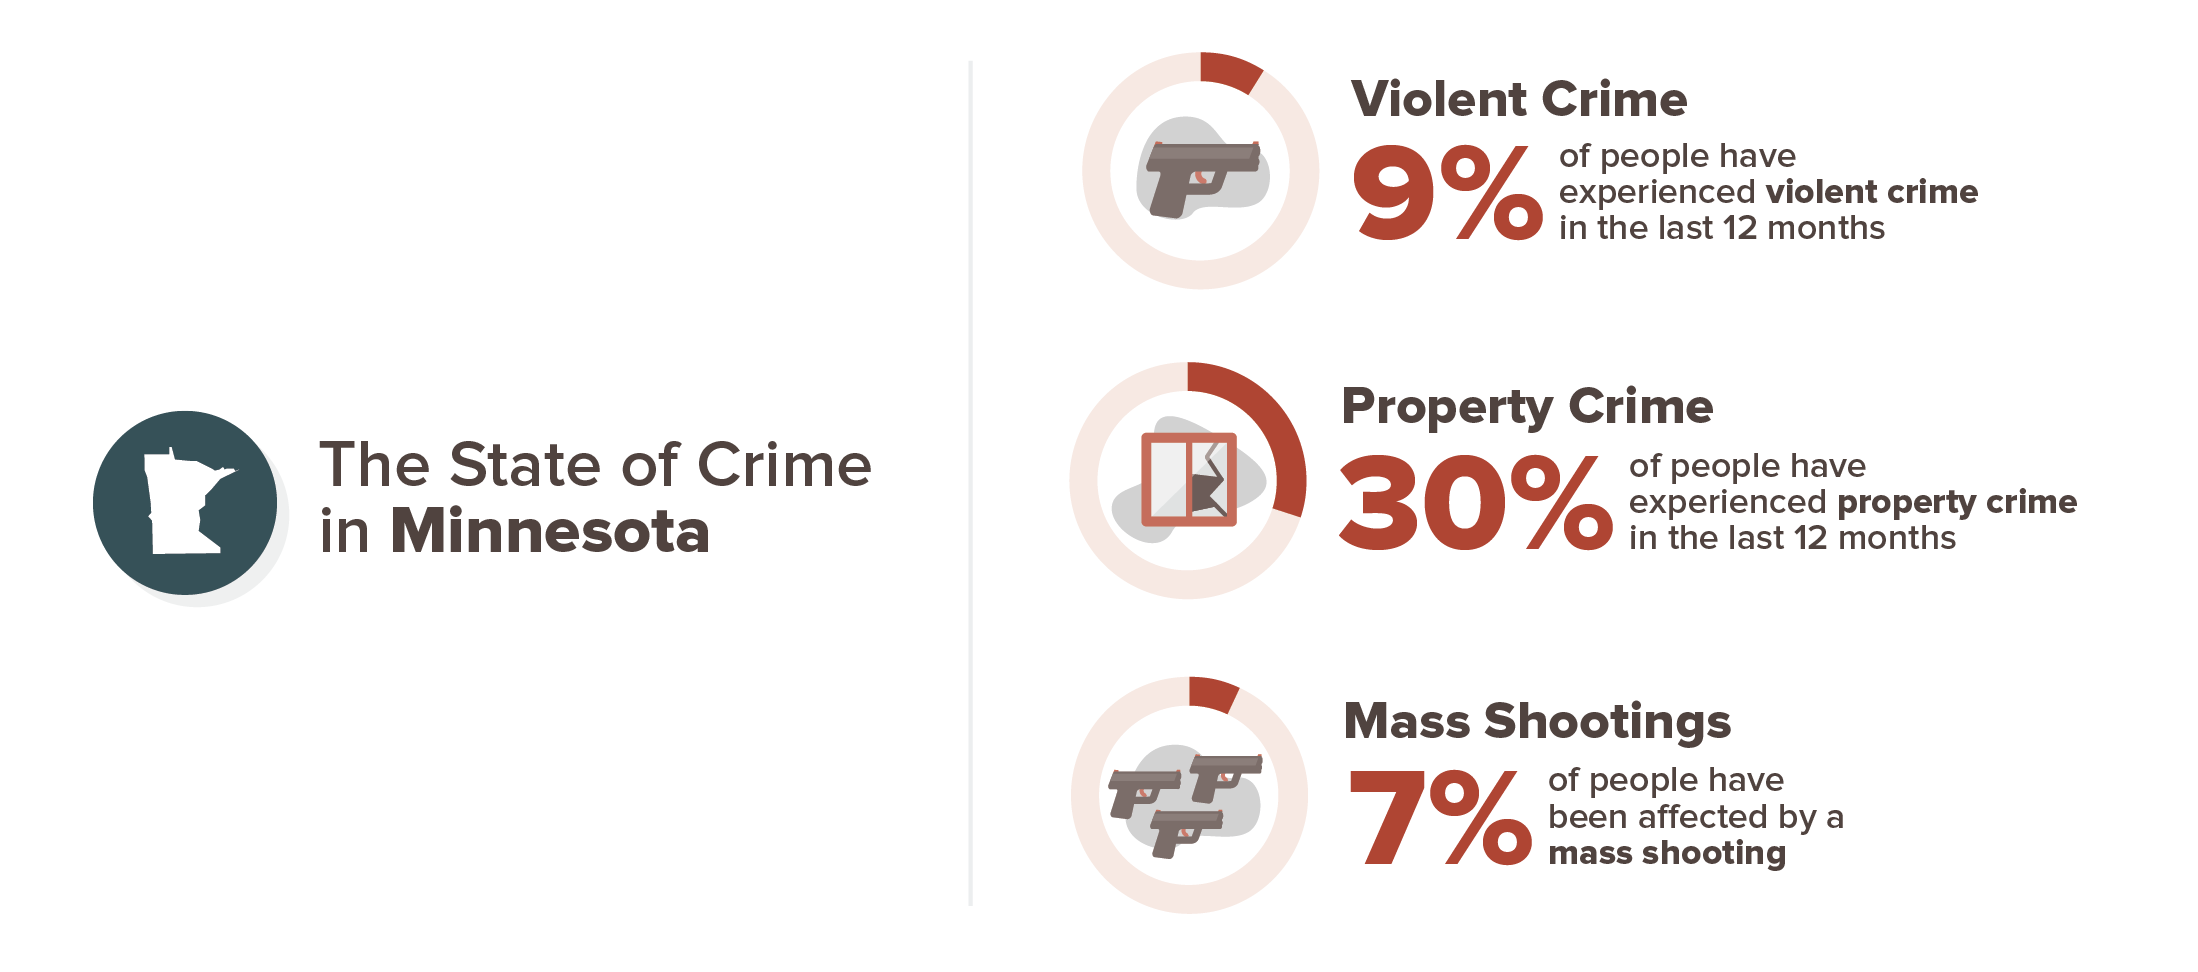 Minnesota crime experience infographic; 9% violent crime, 30% property crime, 7% mass shooting